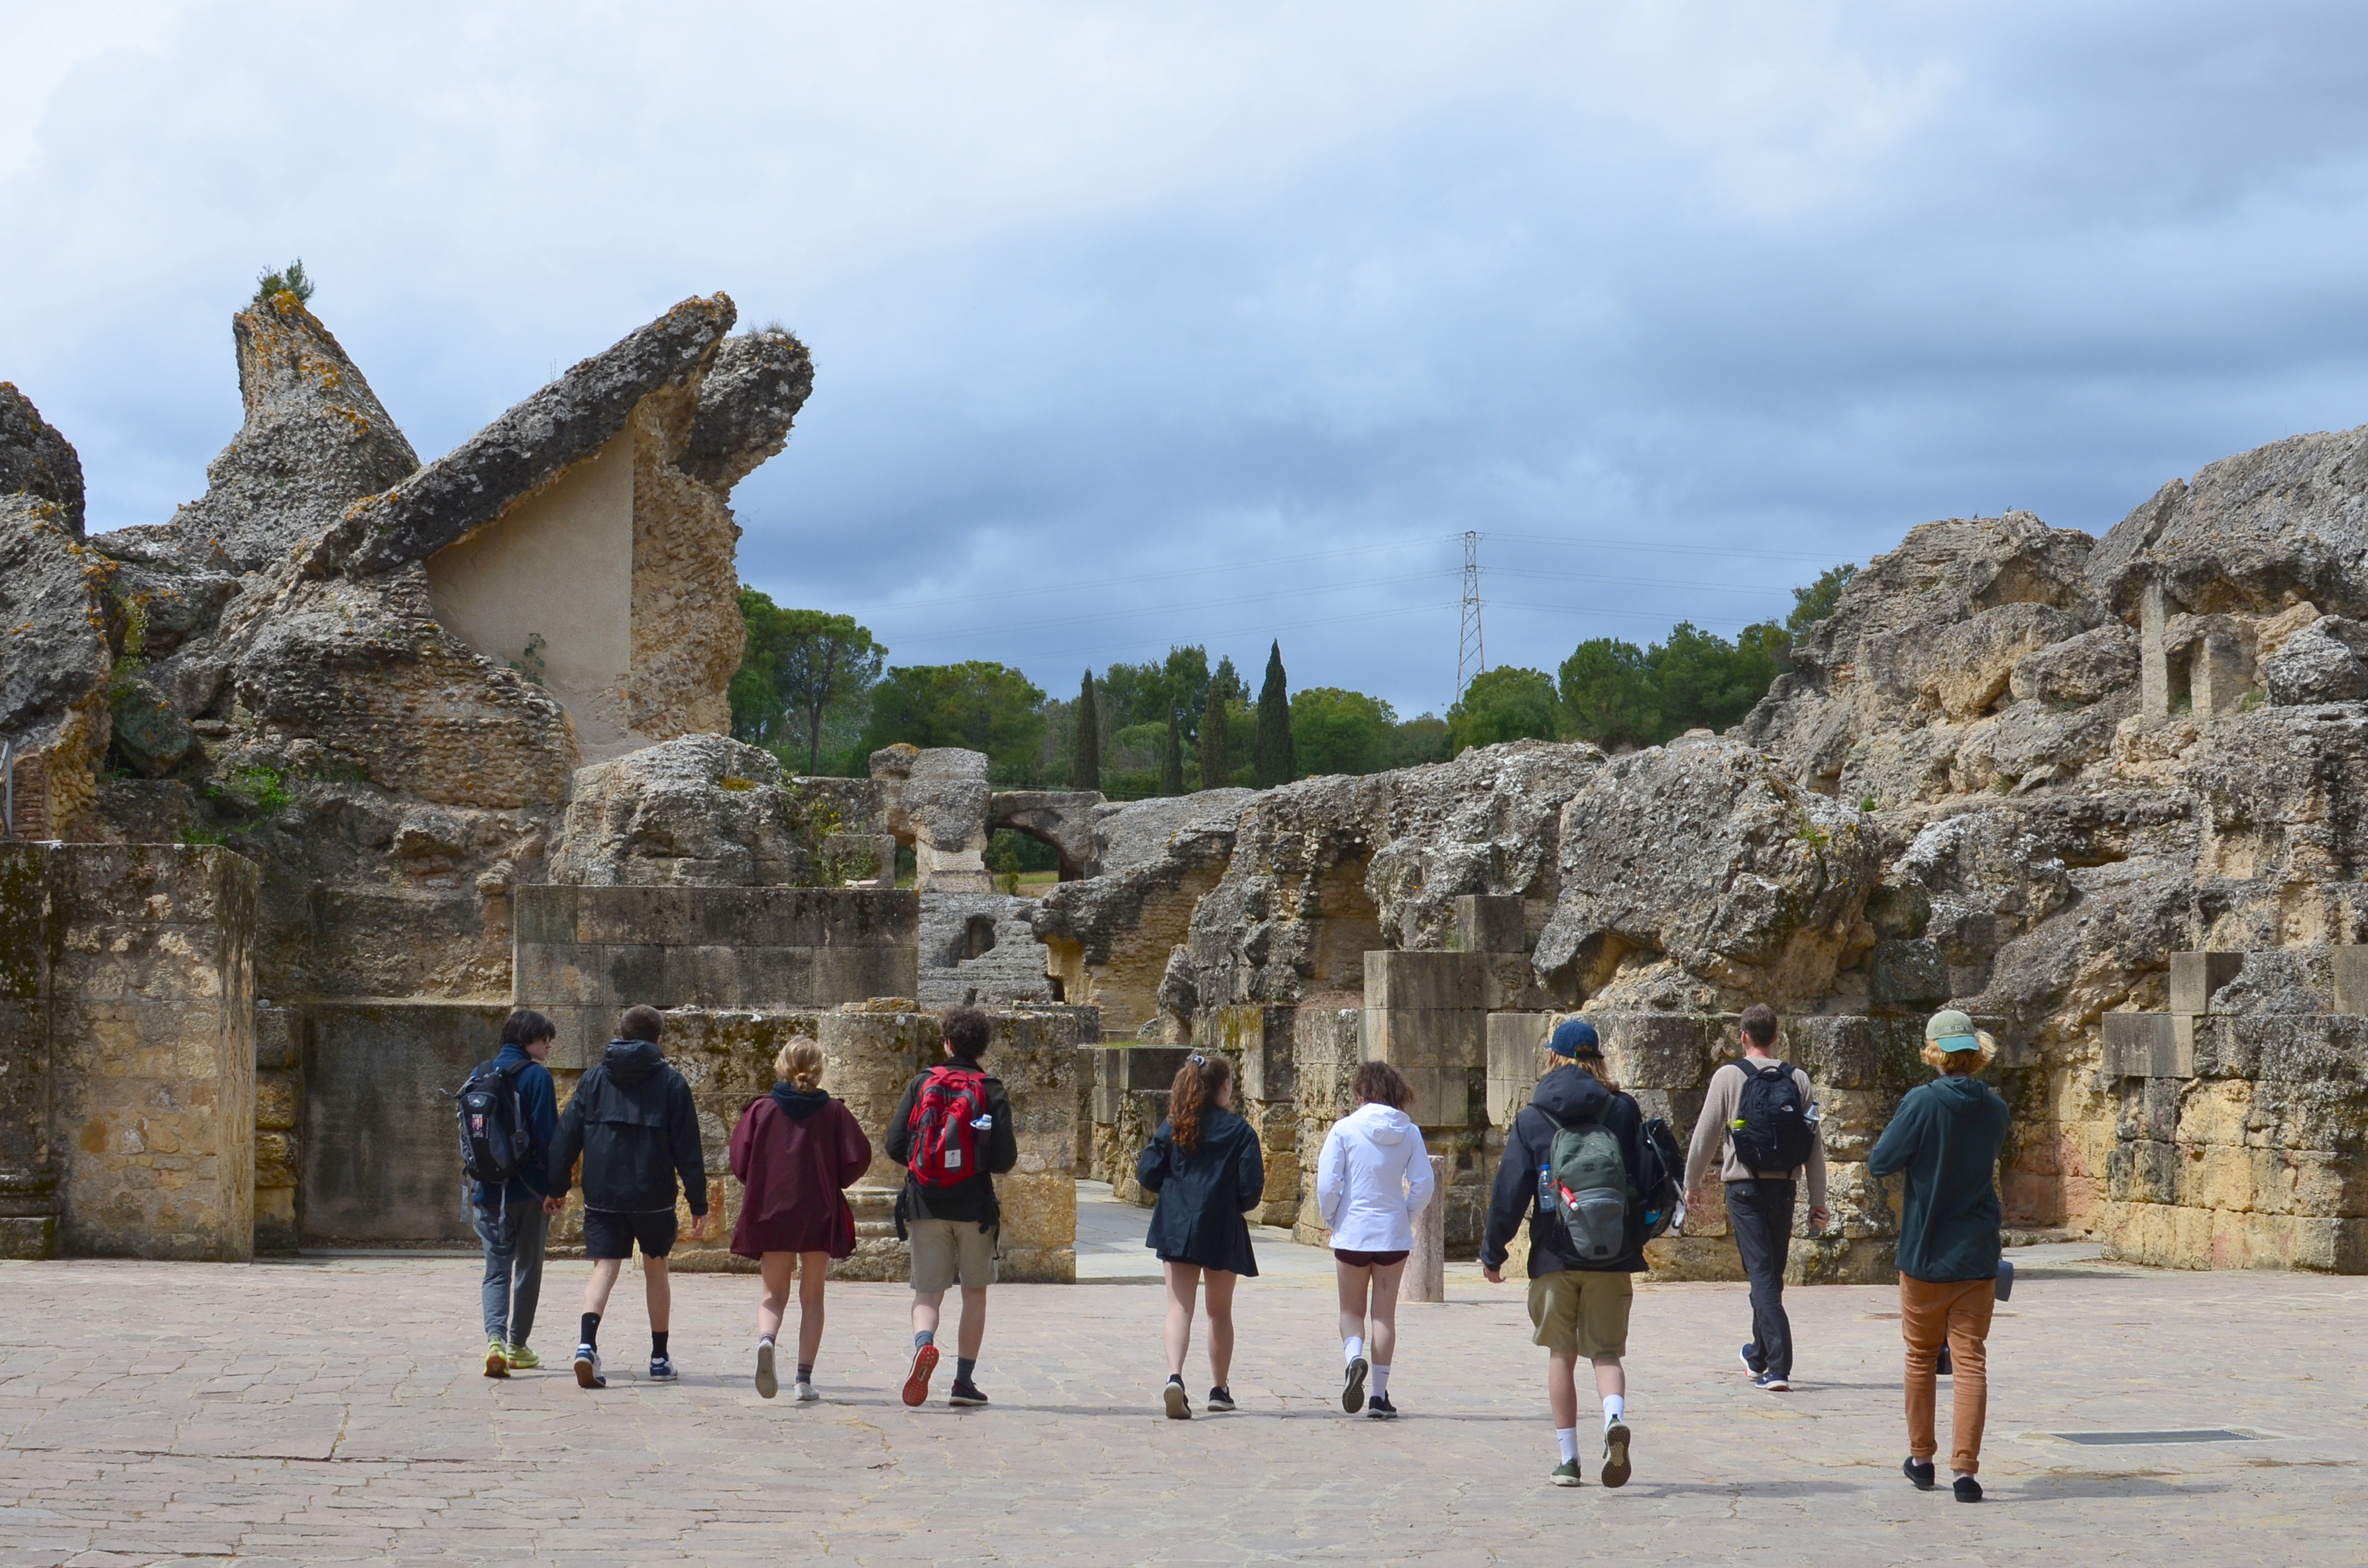 Proctor en Segovia visits the Roman ruins of Italica.